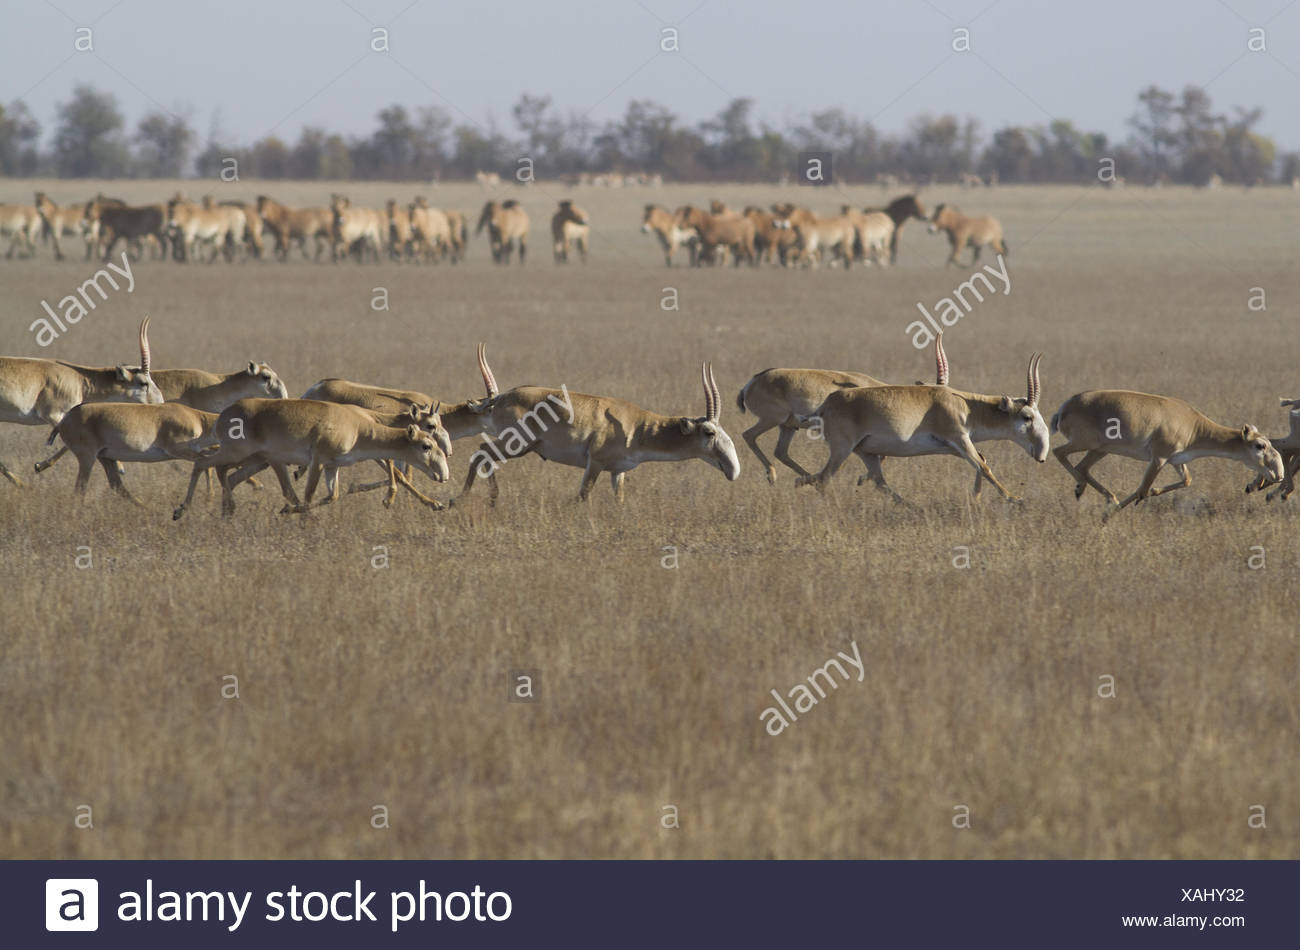 Saiga herd running through the autumn steppe. - Stock Image